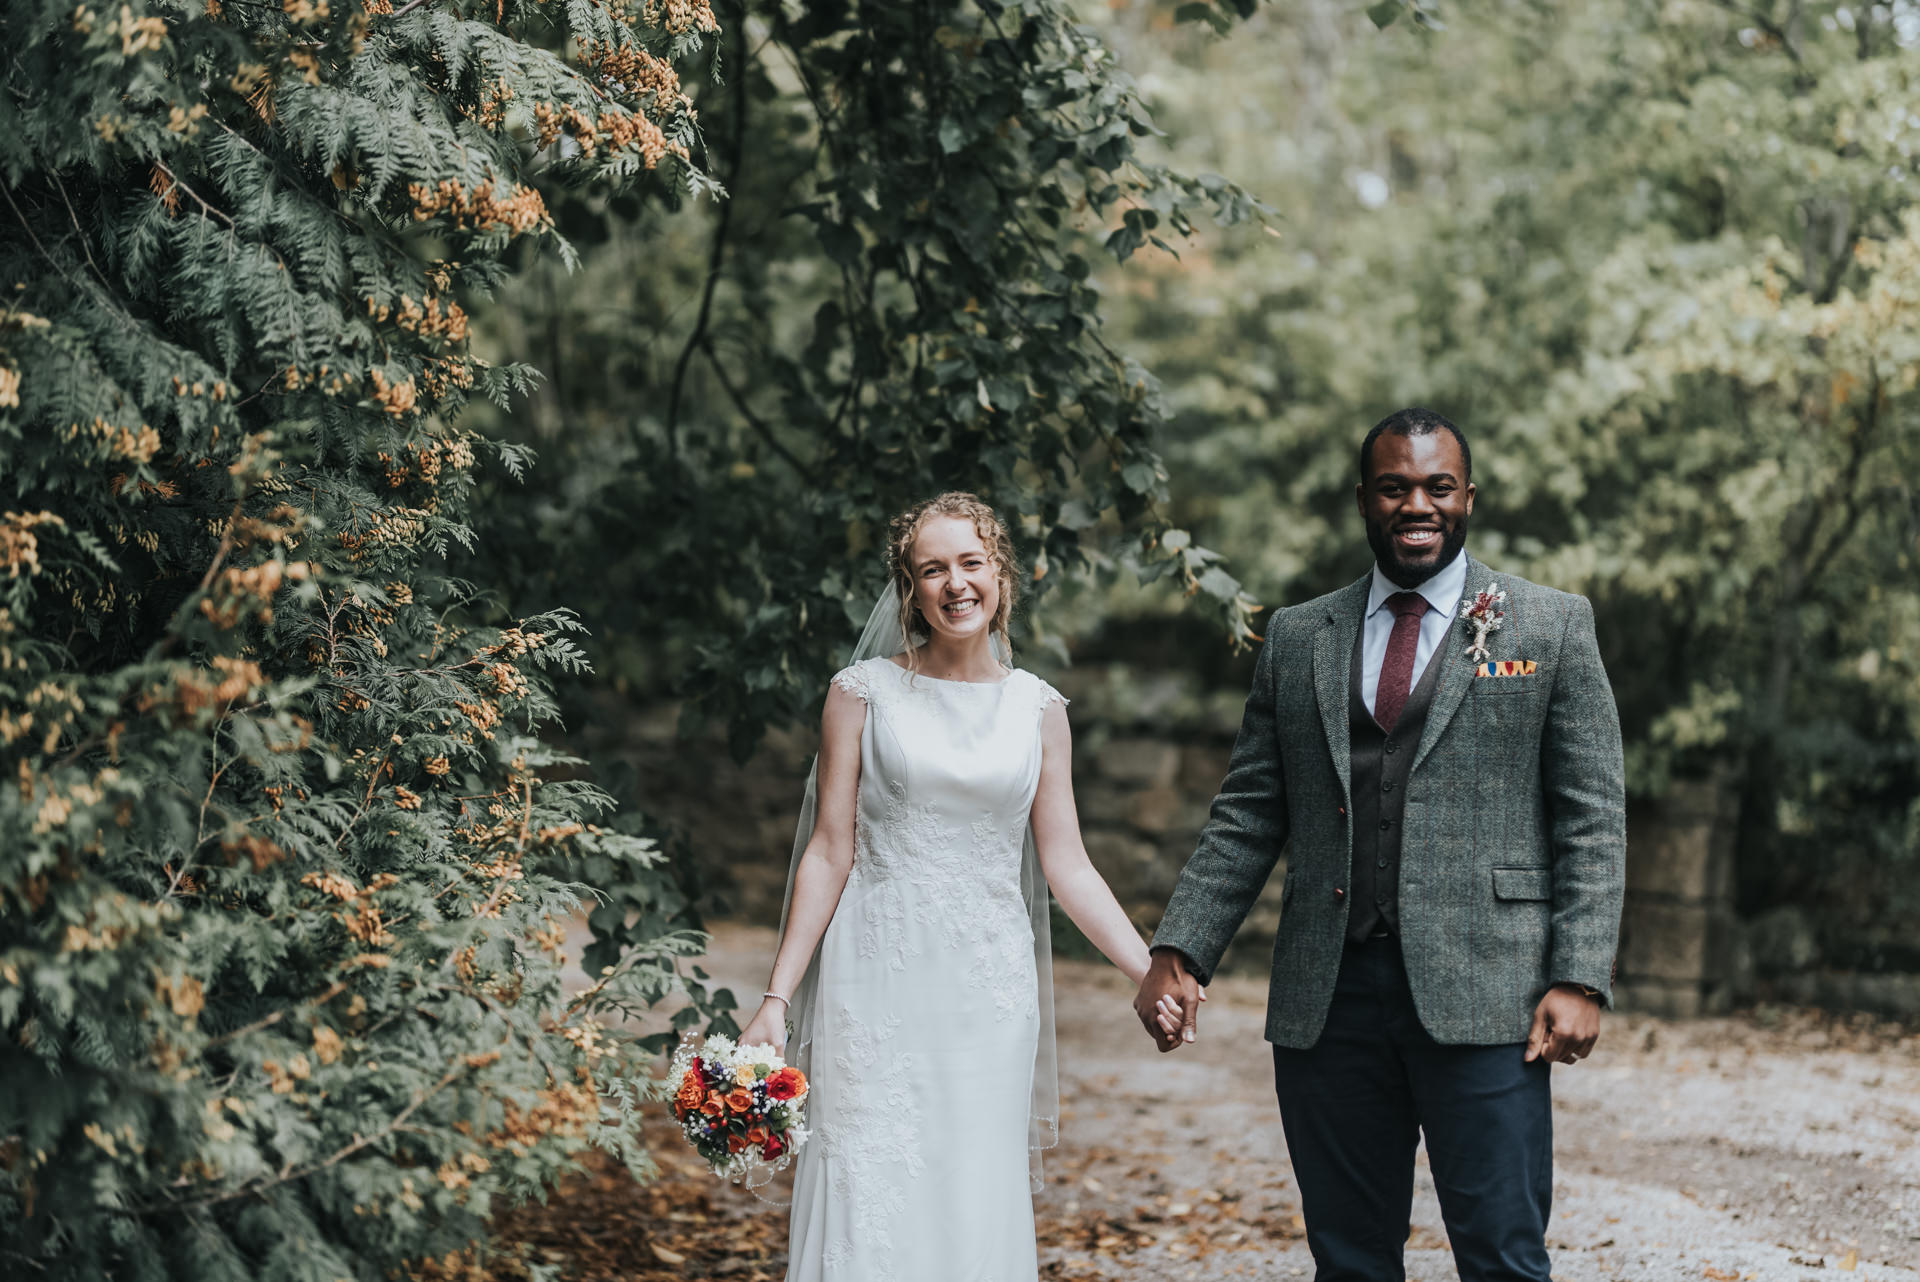 Coos Cathedral wedding photos, wedding Coos Cathedral, wedding photographer Edinburgh, wedding photographer Scotland, wedding photographer Glasgow, Karol Makula Photography, wedding photography Scotland, Scotland wedding photographer